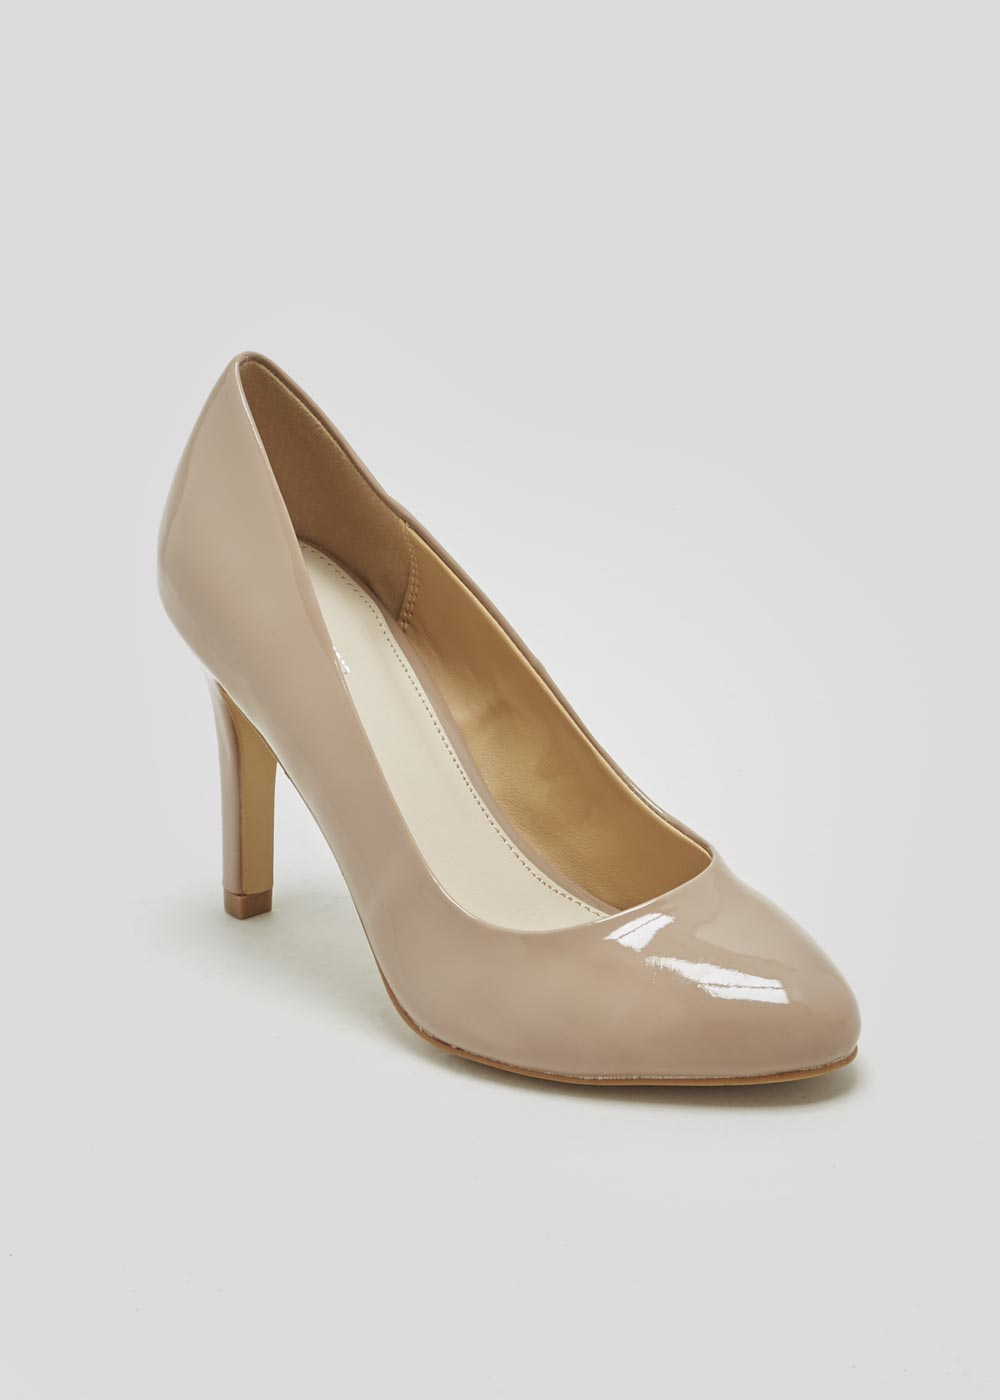 4b9e4d478a This review is from Round Toe Court Shoes.